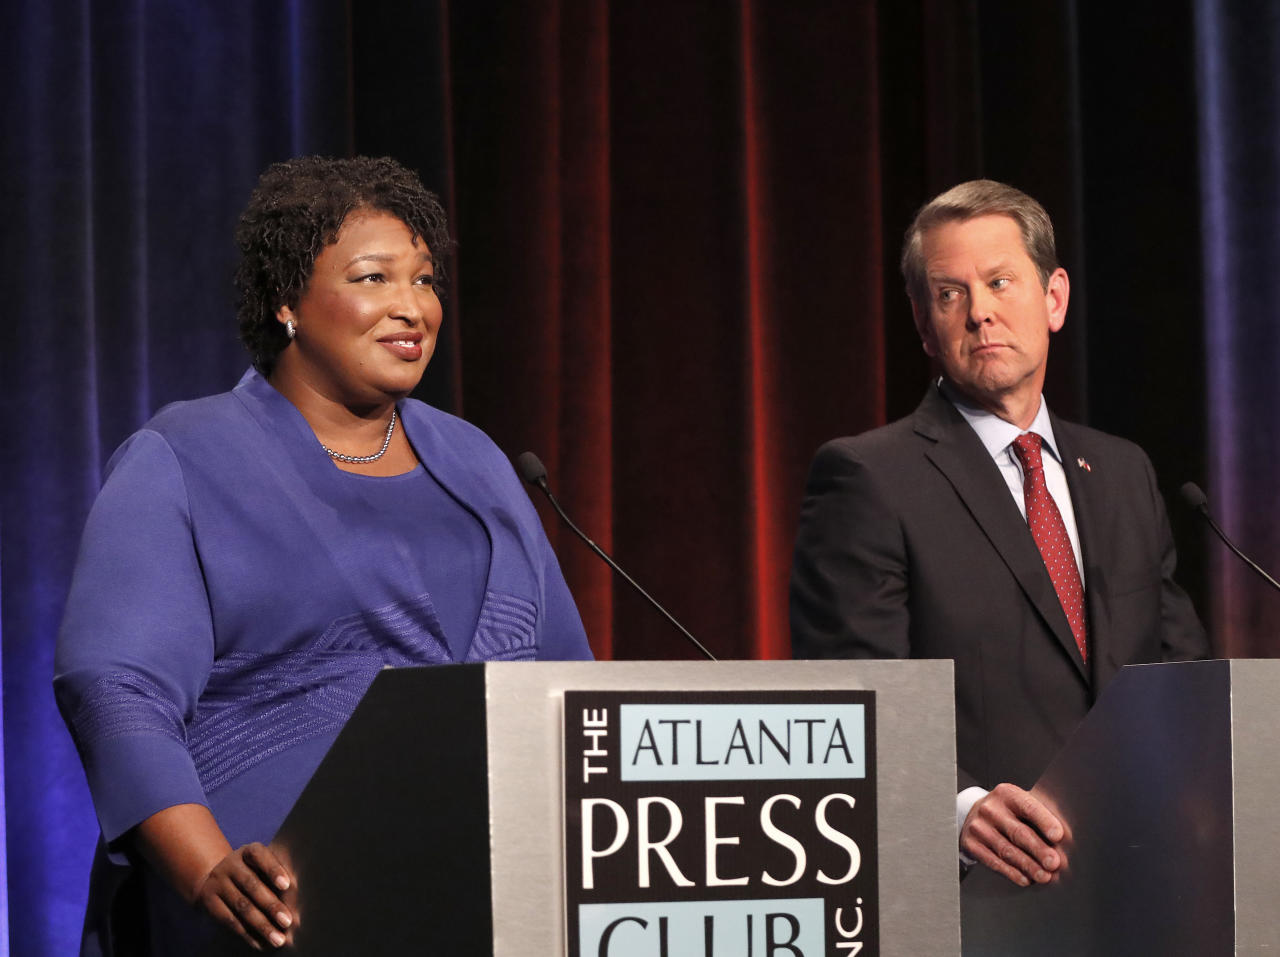 Democratic gubernatorial candidate for Georgia Stacey Abrams, left, speaks as her Republican opponent Secretary of State Brian Kemp looks on during a debate Tuesday, Oct. 23, 2018, in Atlanta. (AP Photo/John Bazemore)